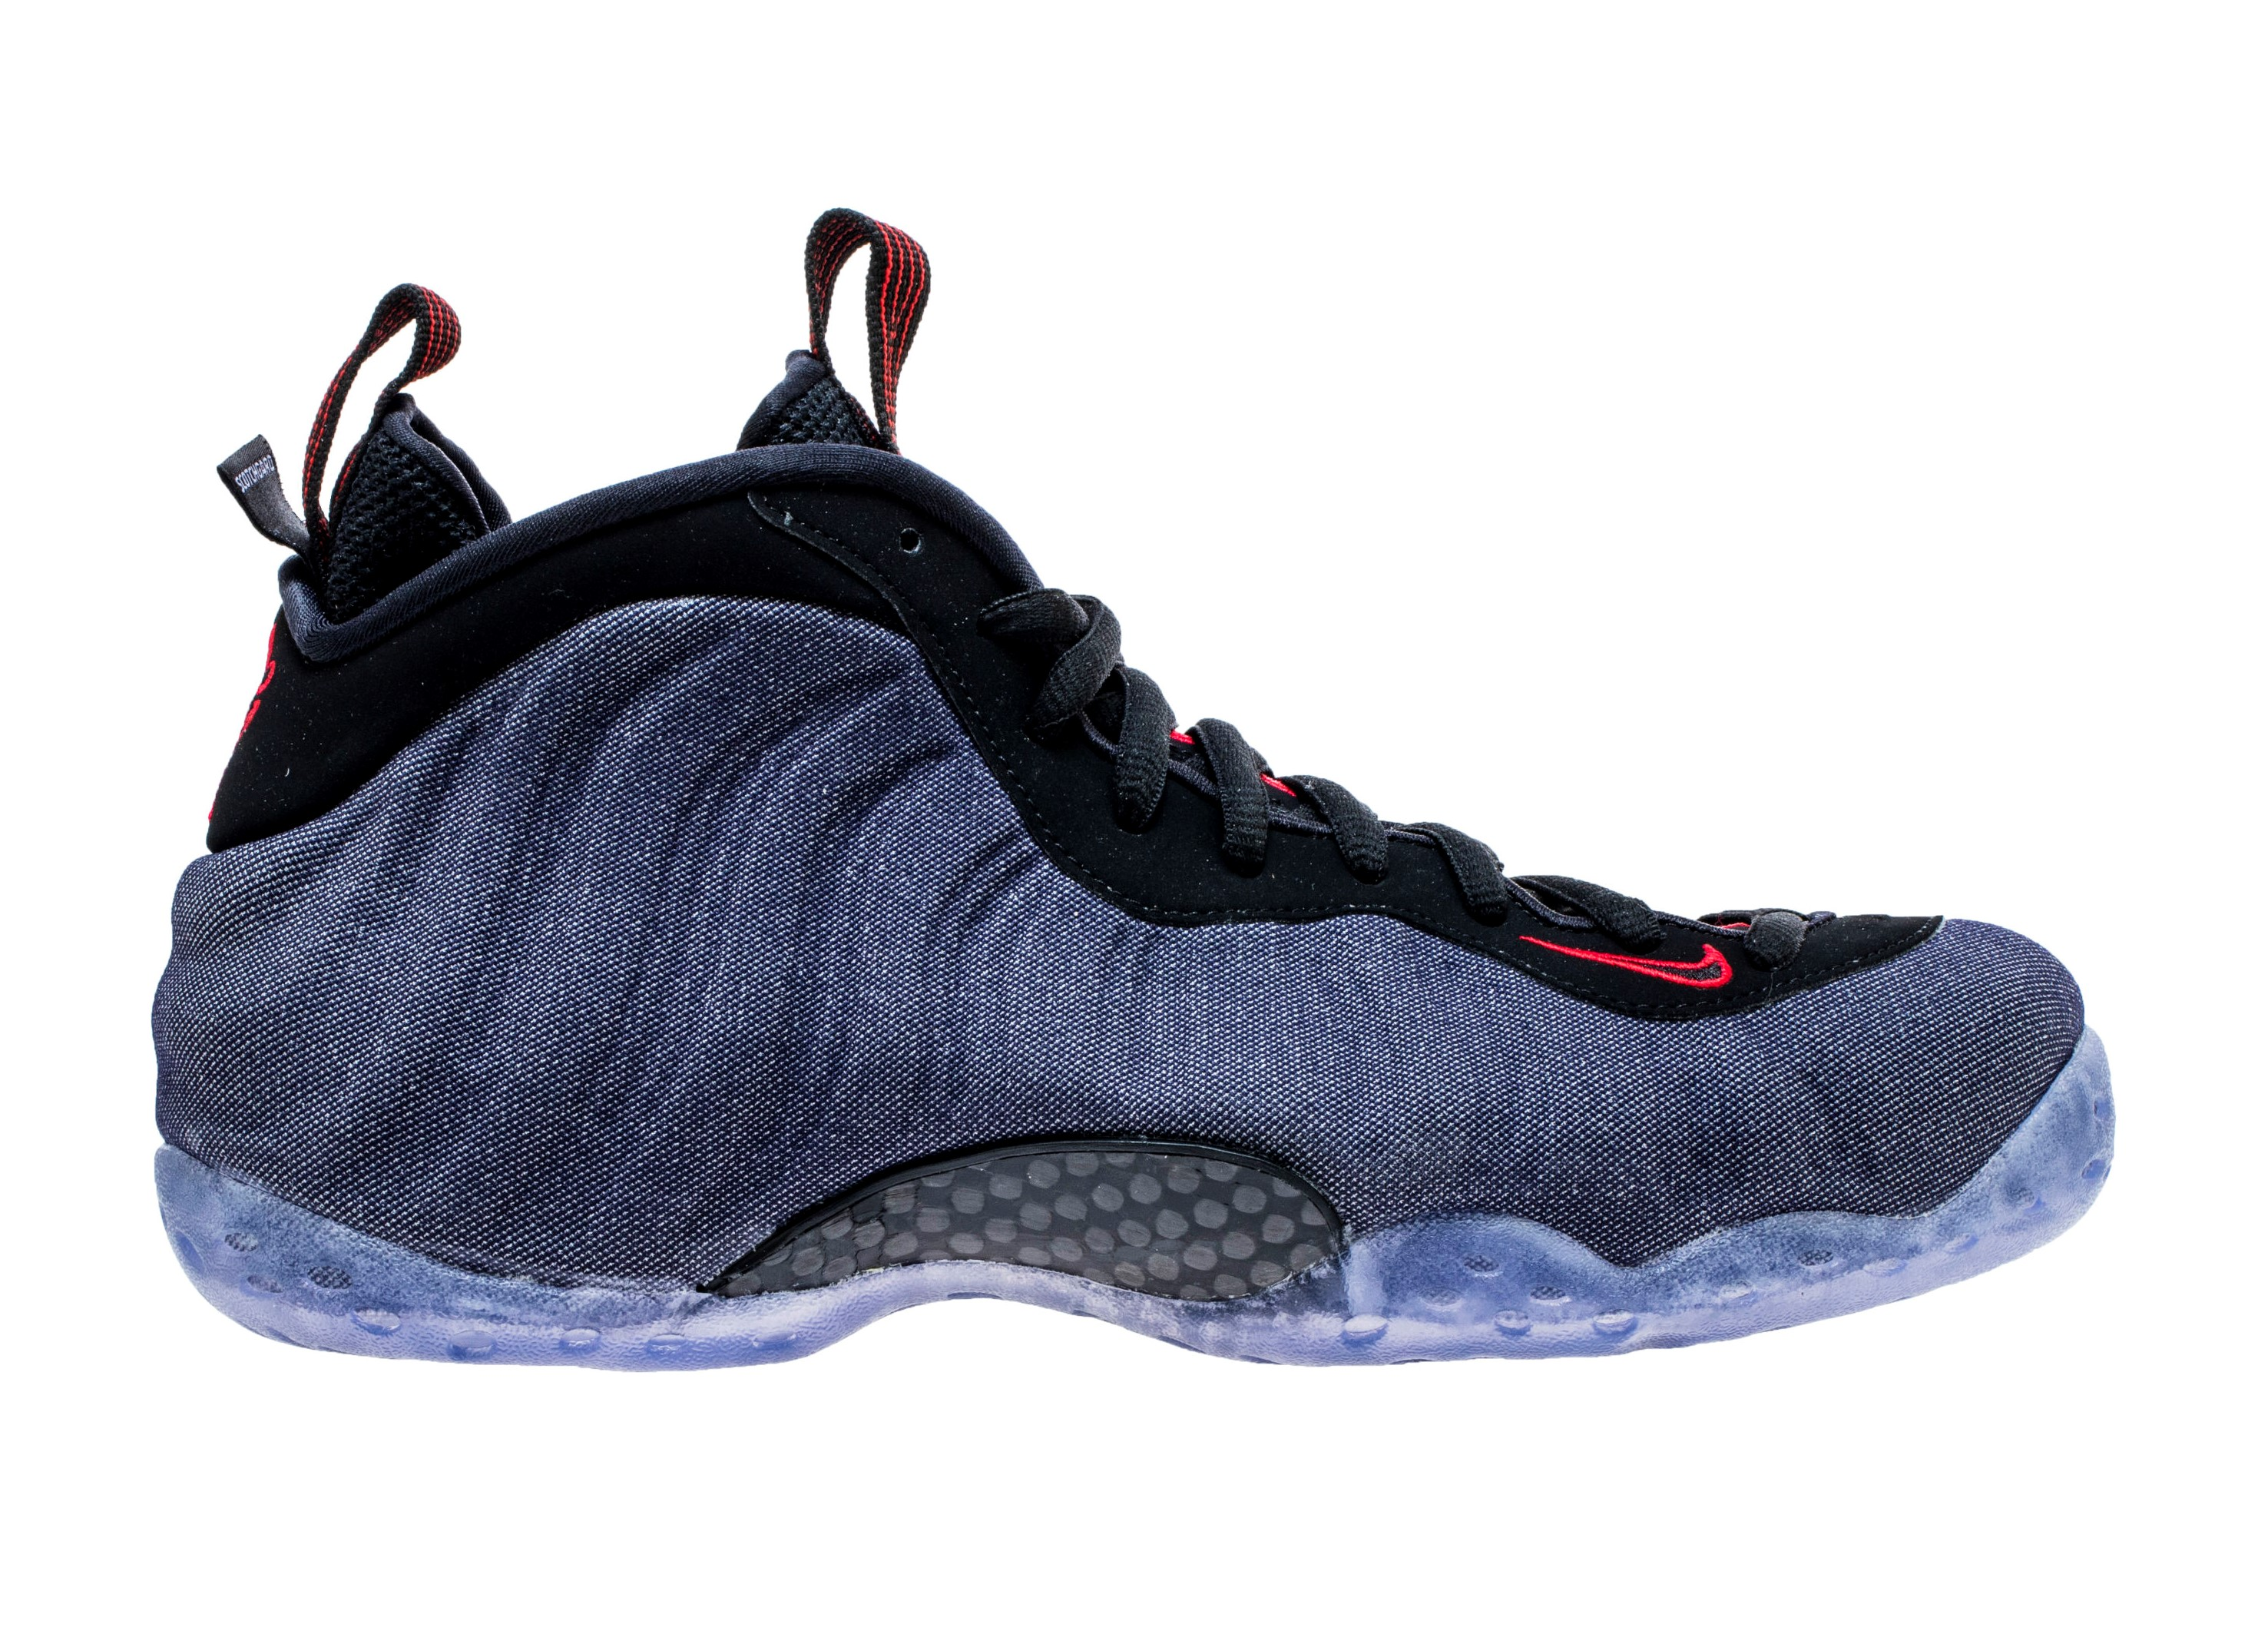 huge discount 75689 b9af5 nike air foamposite one denim release date 1. Aug29